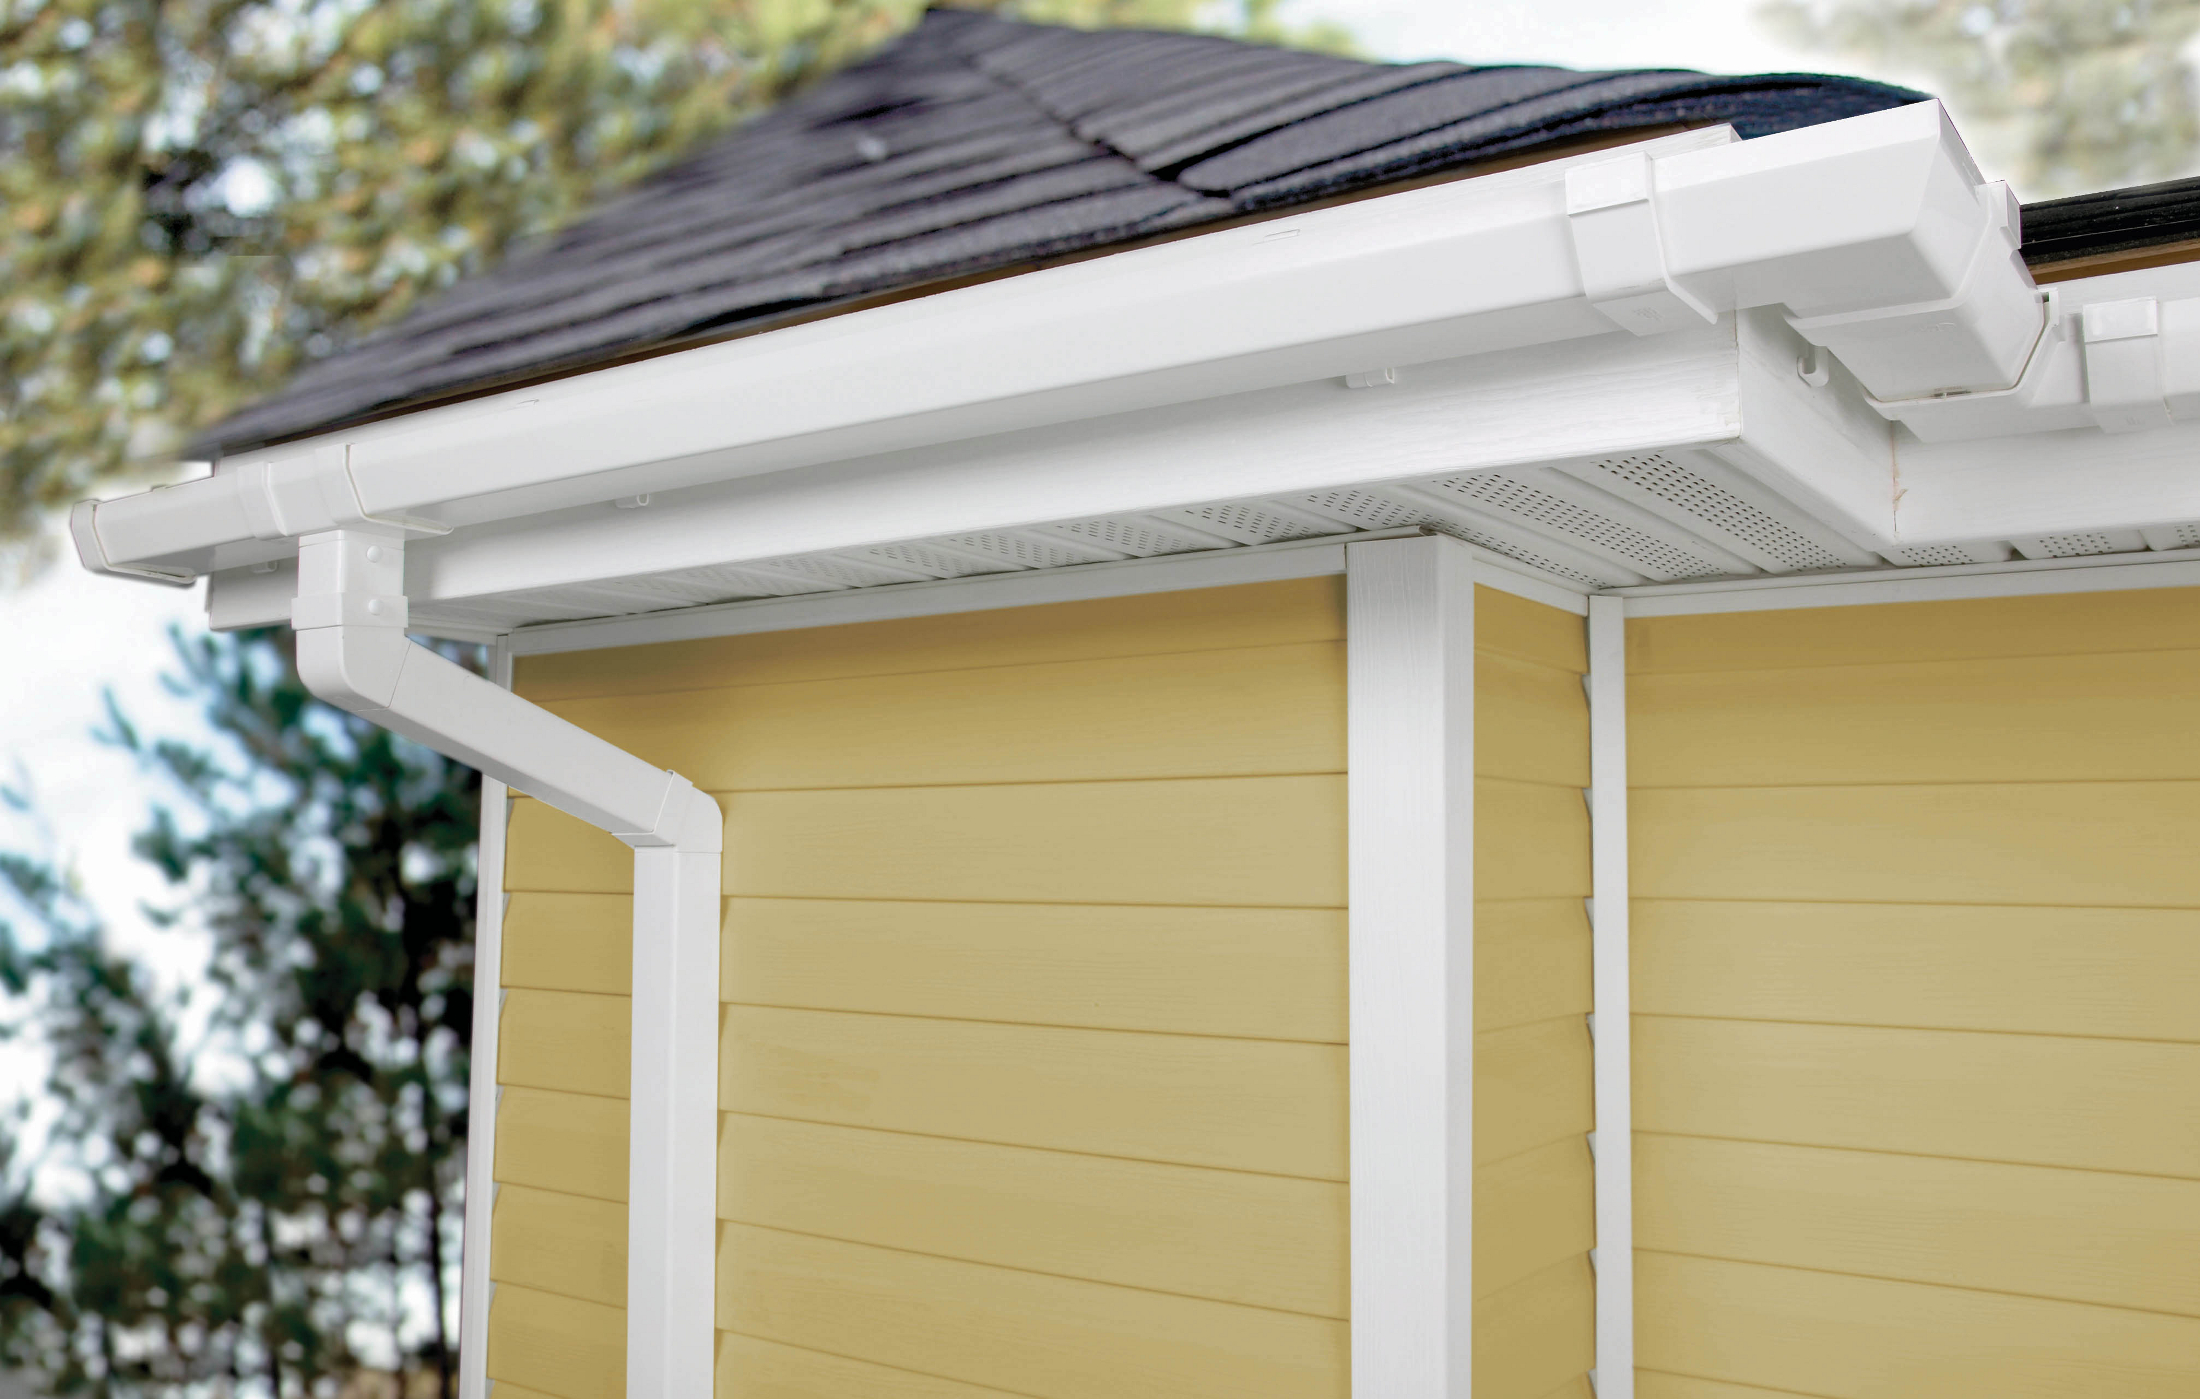 gutters and downspouts.jpg